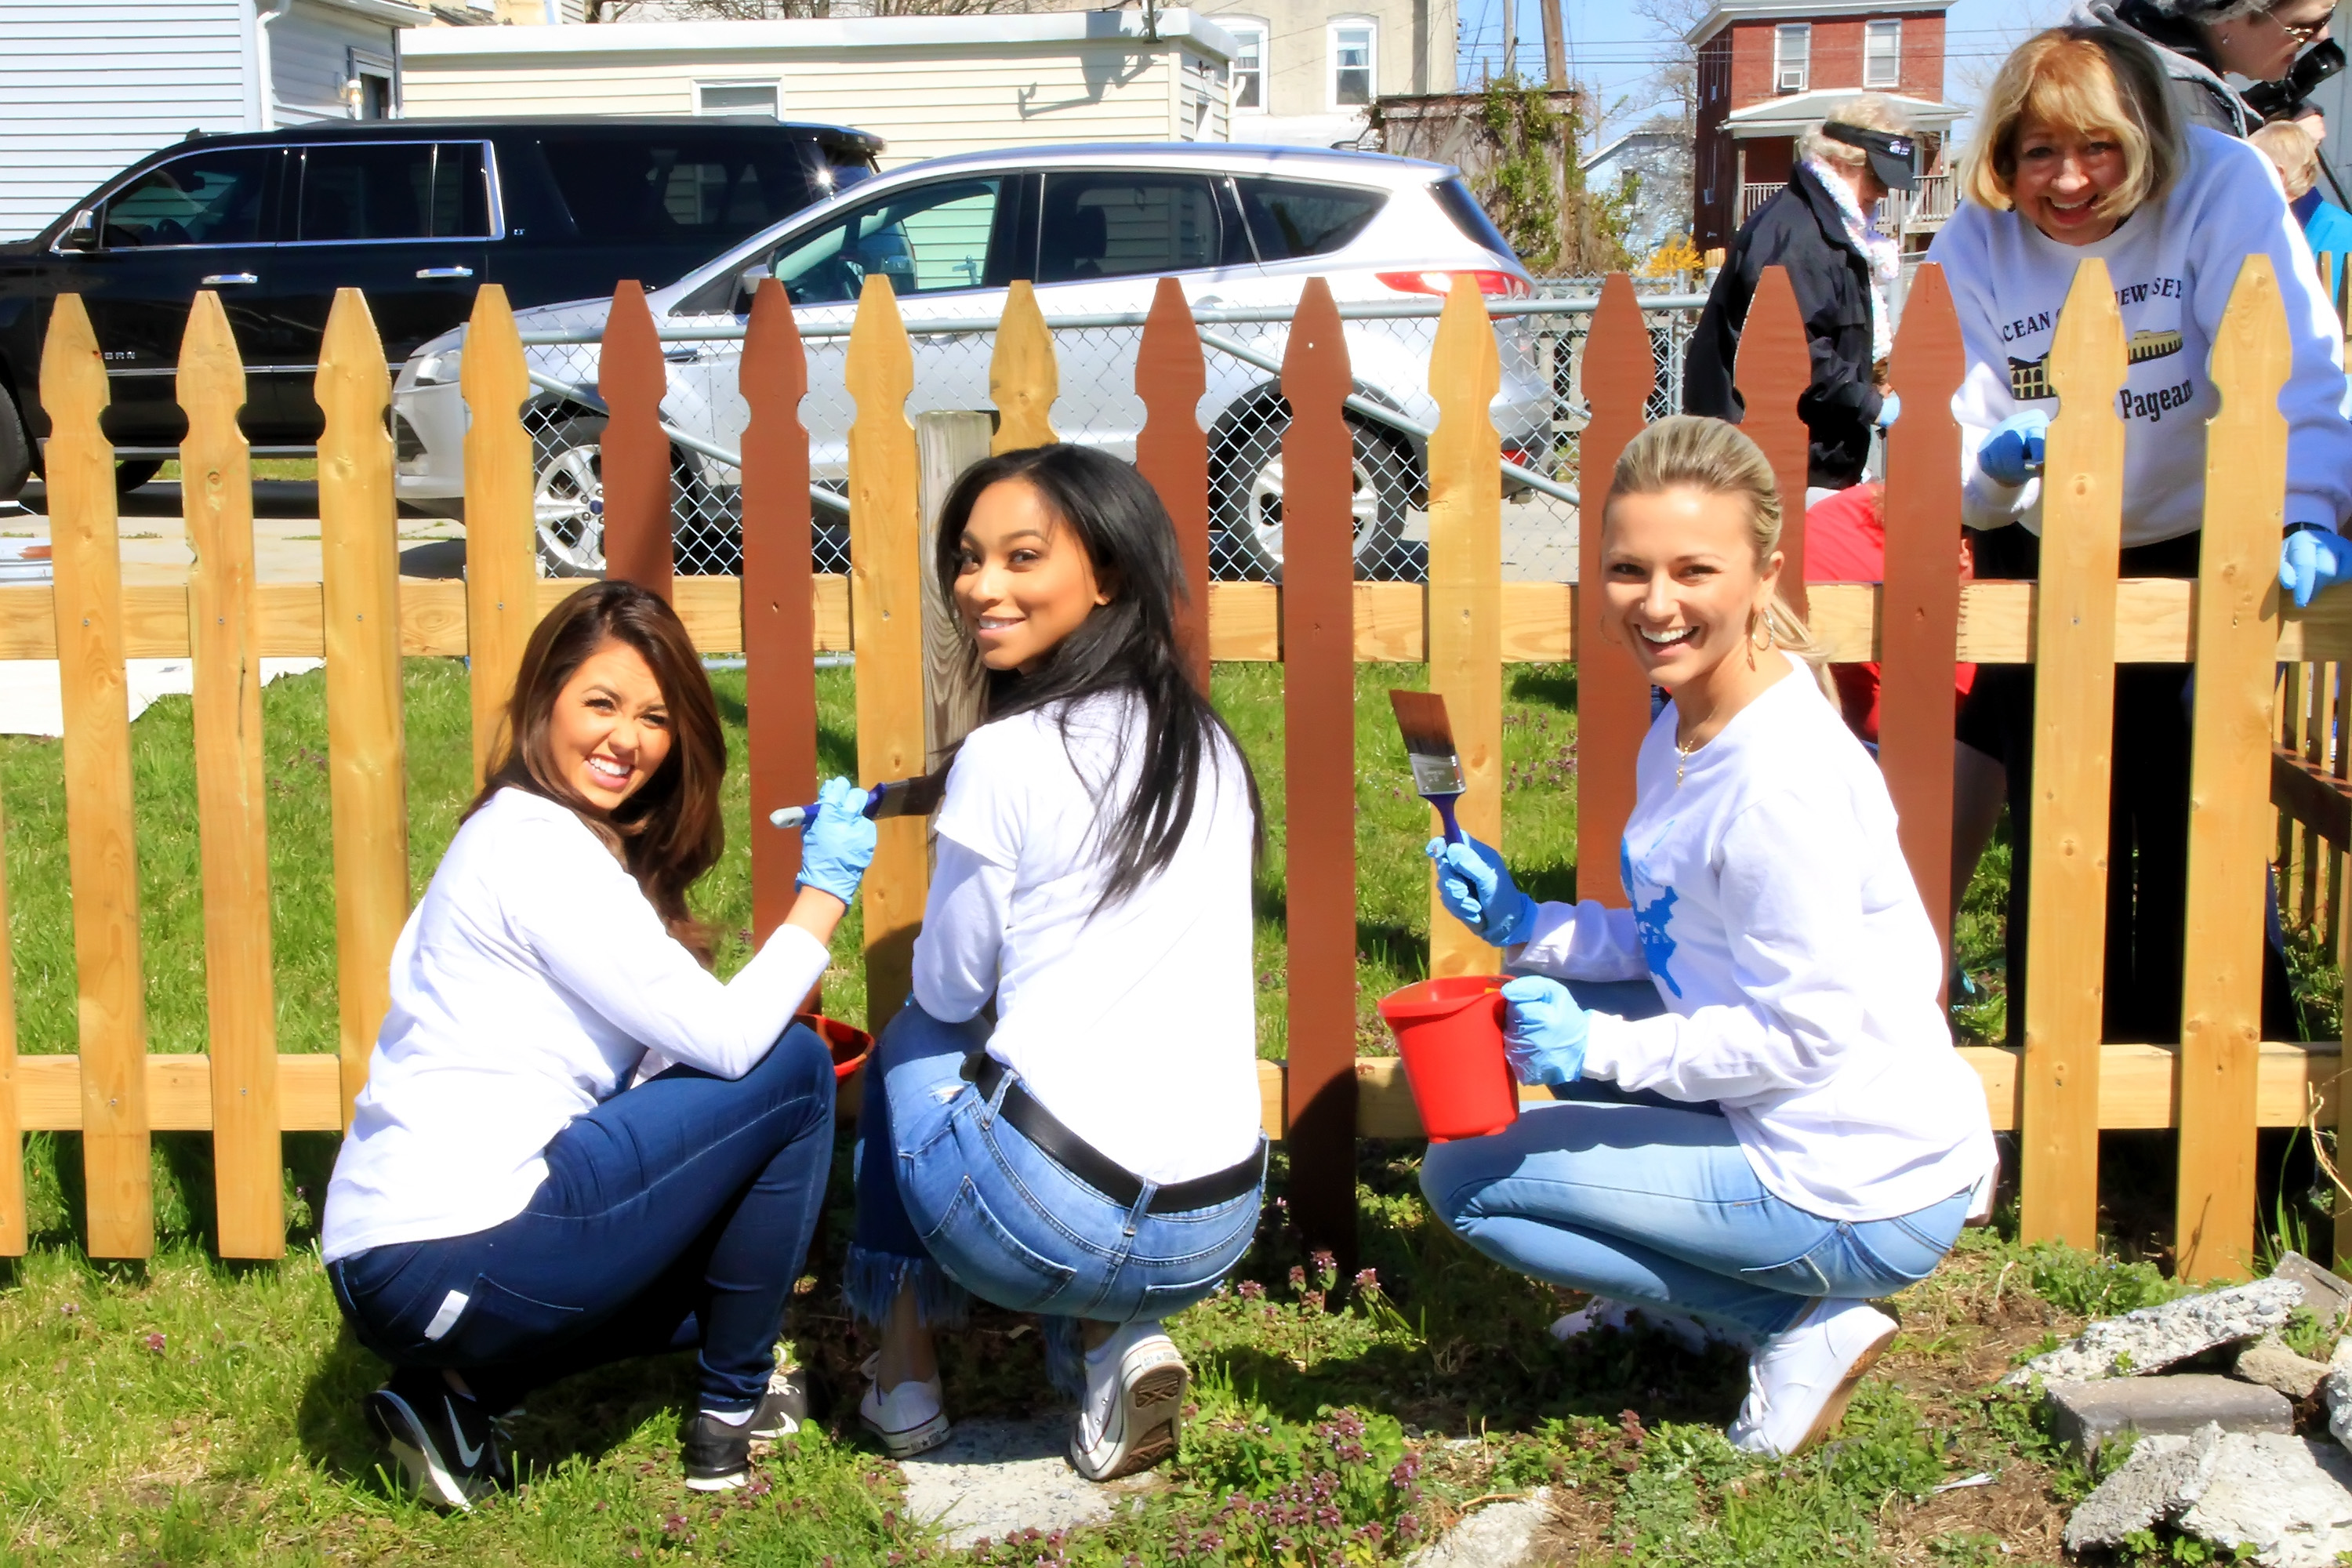 Miss America 2018 Cara Mund and other contestants paint a fence for Habit for Humanity project in Atlantic City, New Jersey.